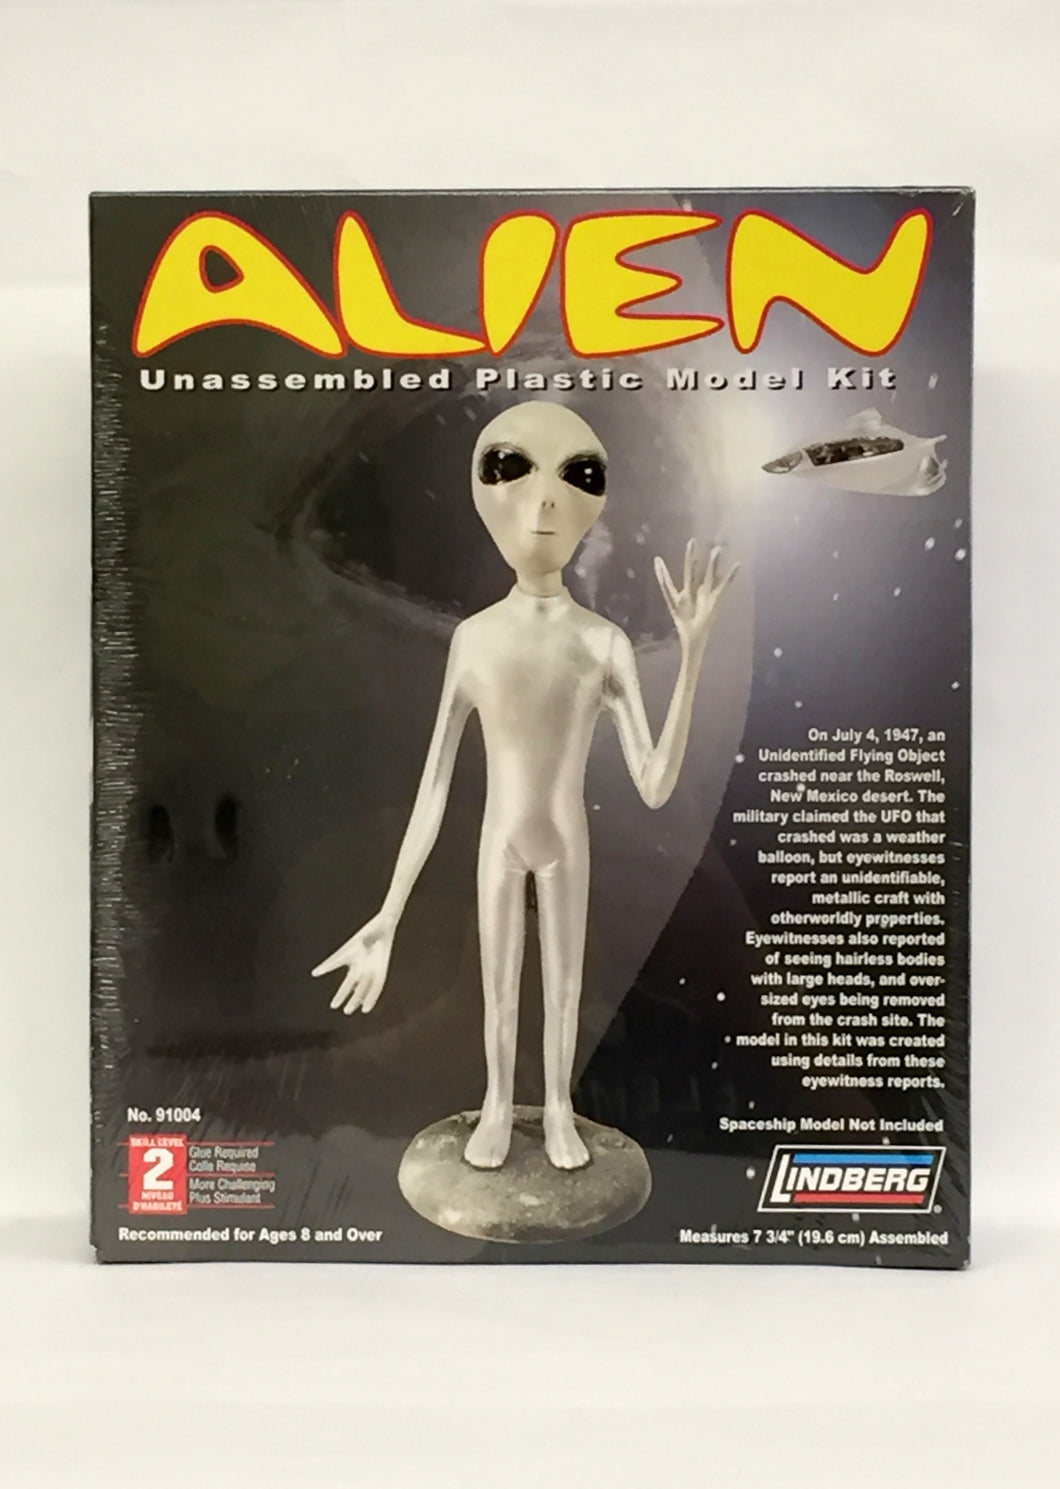 Alien unassembled plastic model